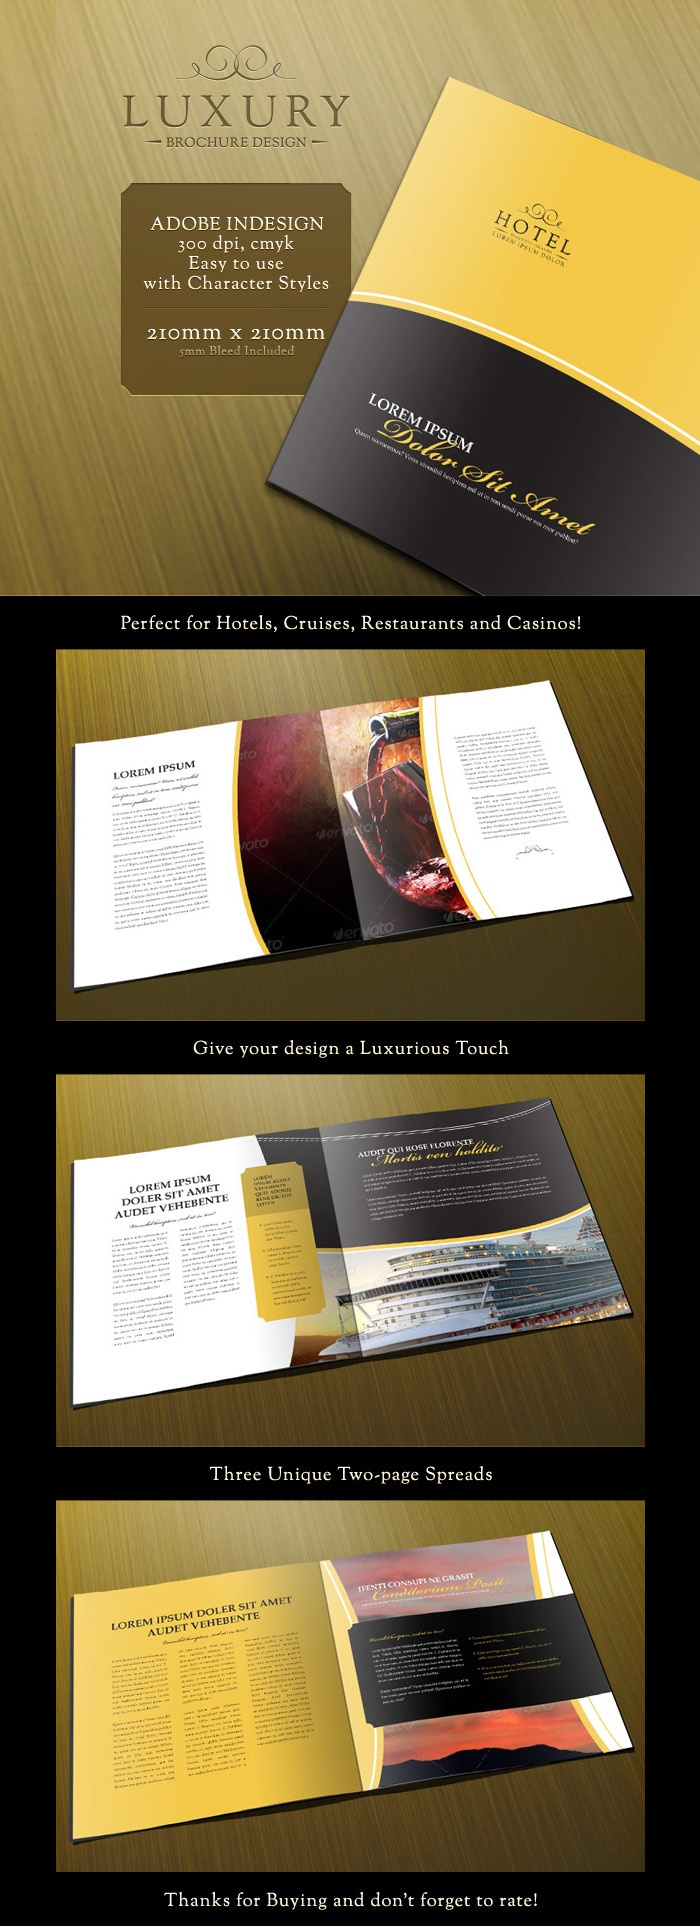 Luxury Brochure Template Is A High Quality Indesign Brochure Template With  A Sleek Look And Feel Which Is Perfect For Hotels, Cruises, Casinos And  Other ...